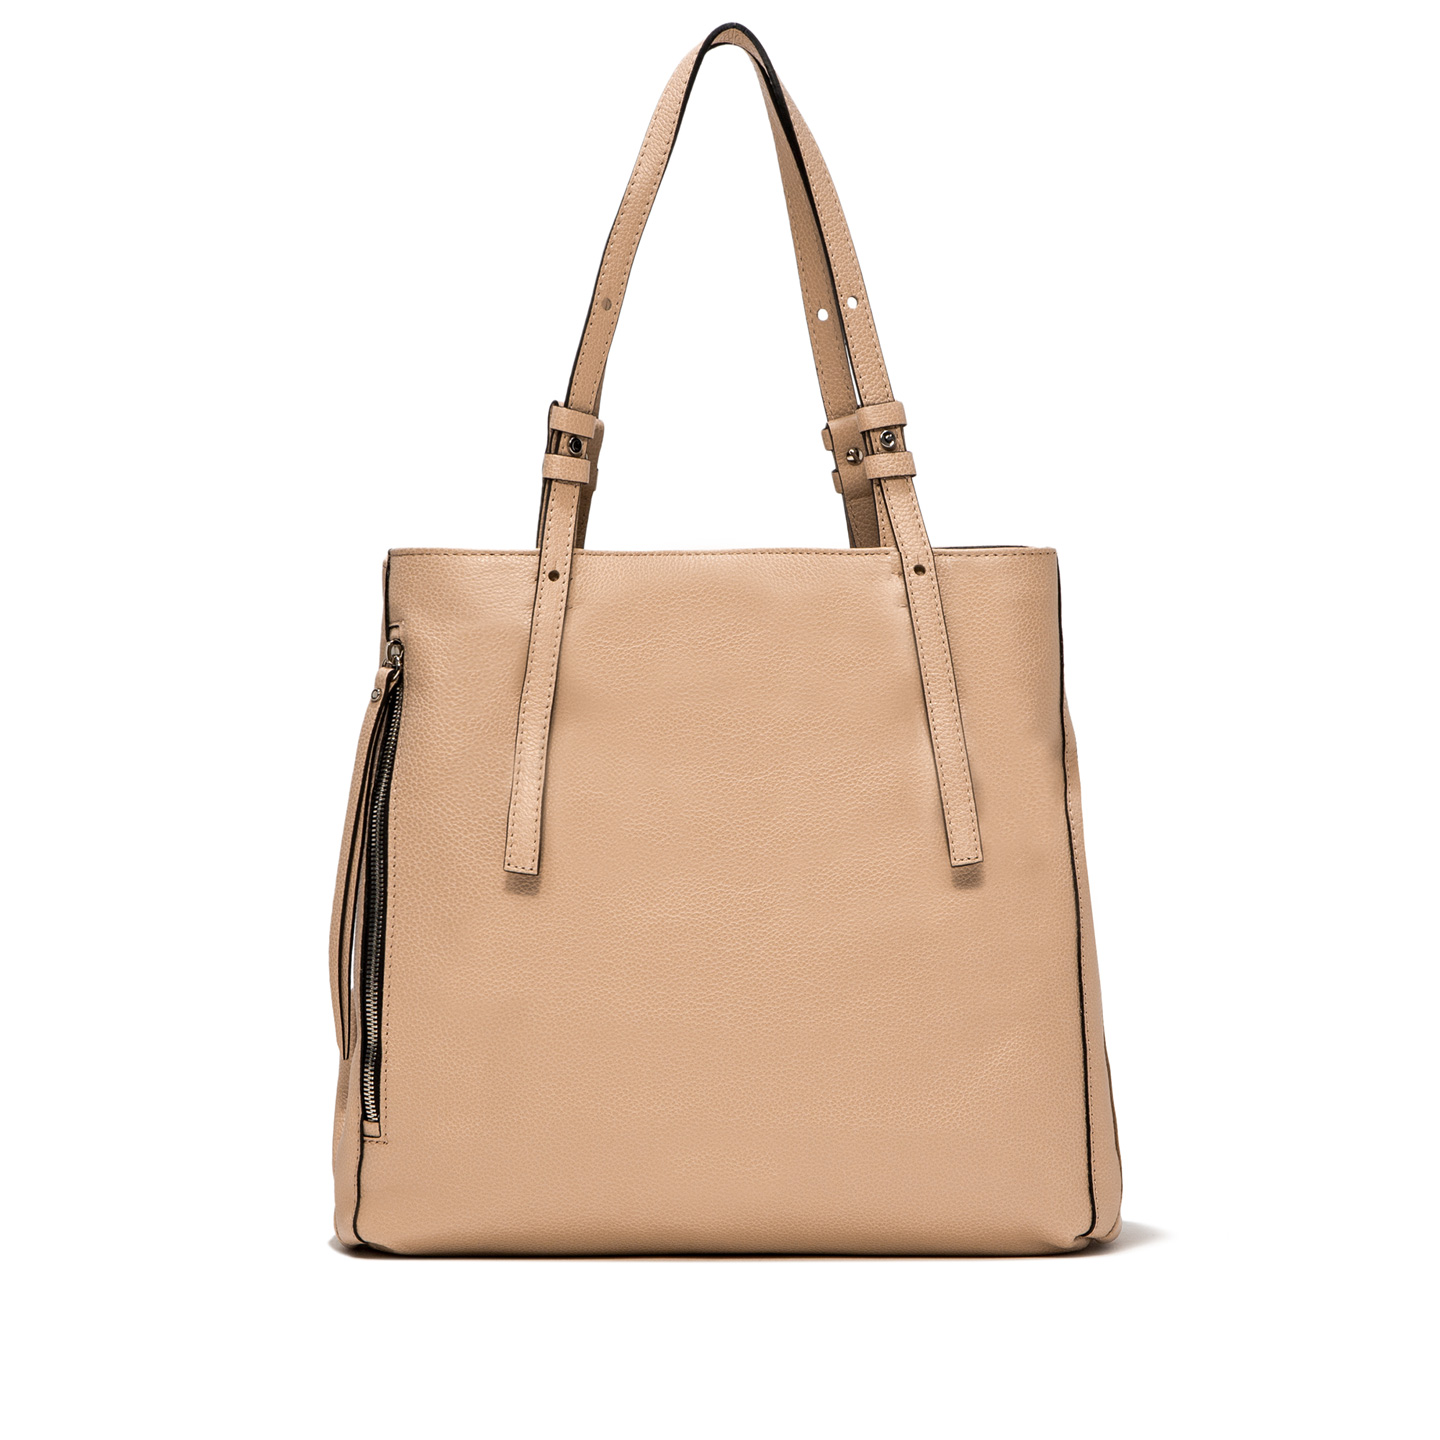 GIANNI CHIARINI: TWIN LARGE NUDE SHOPPING BAG